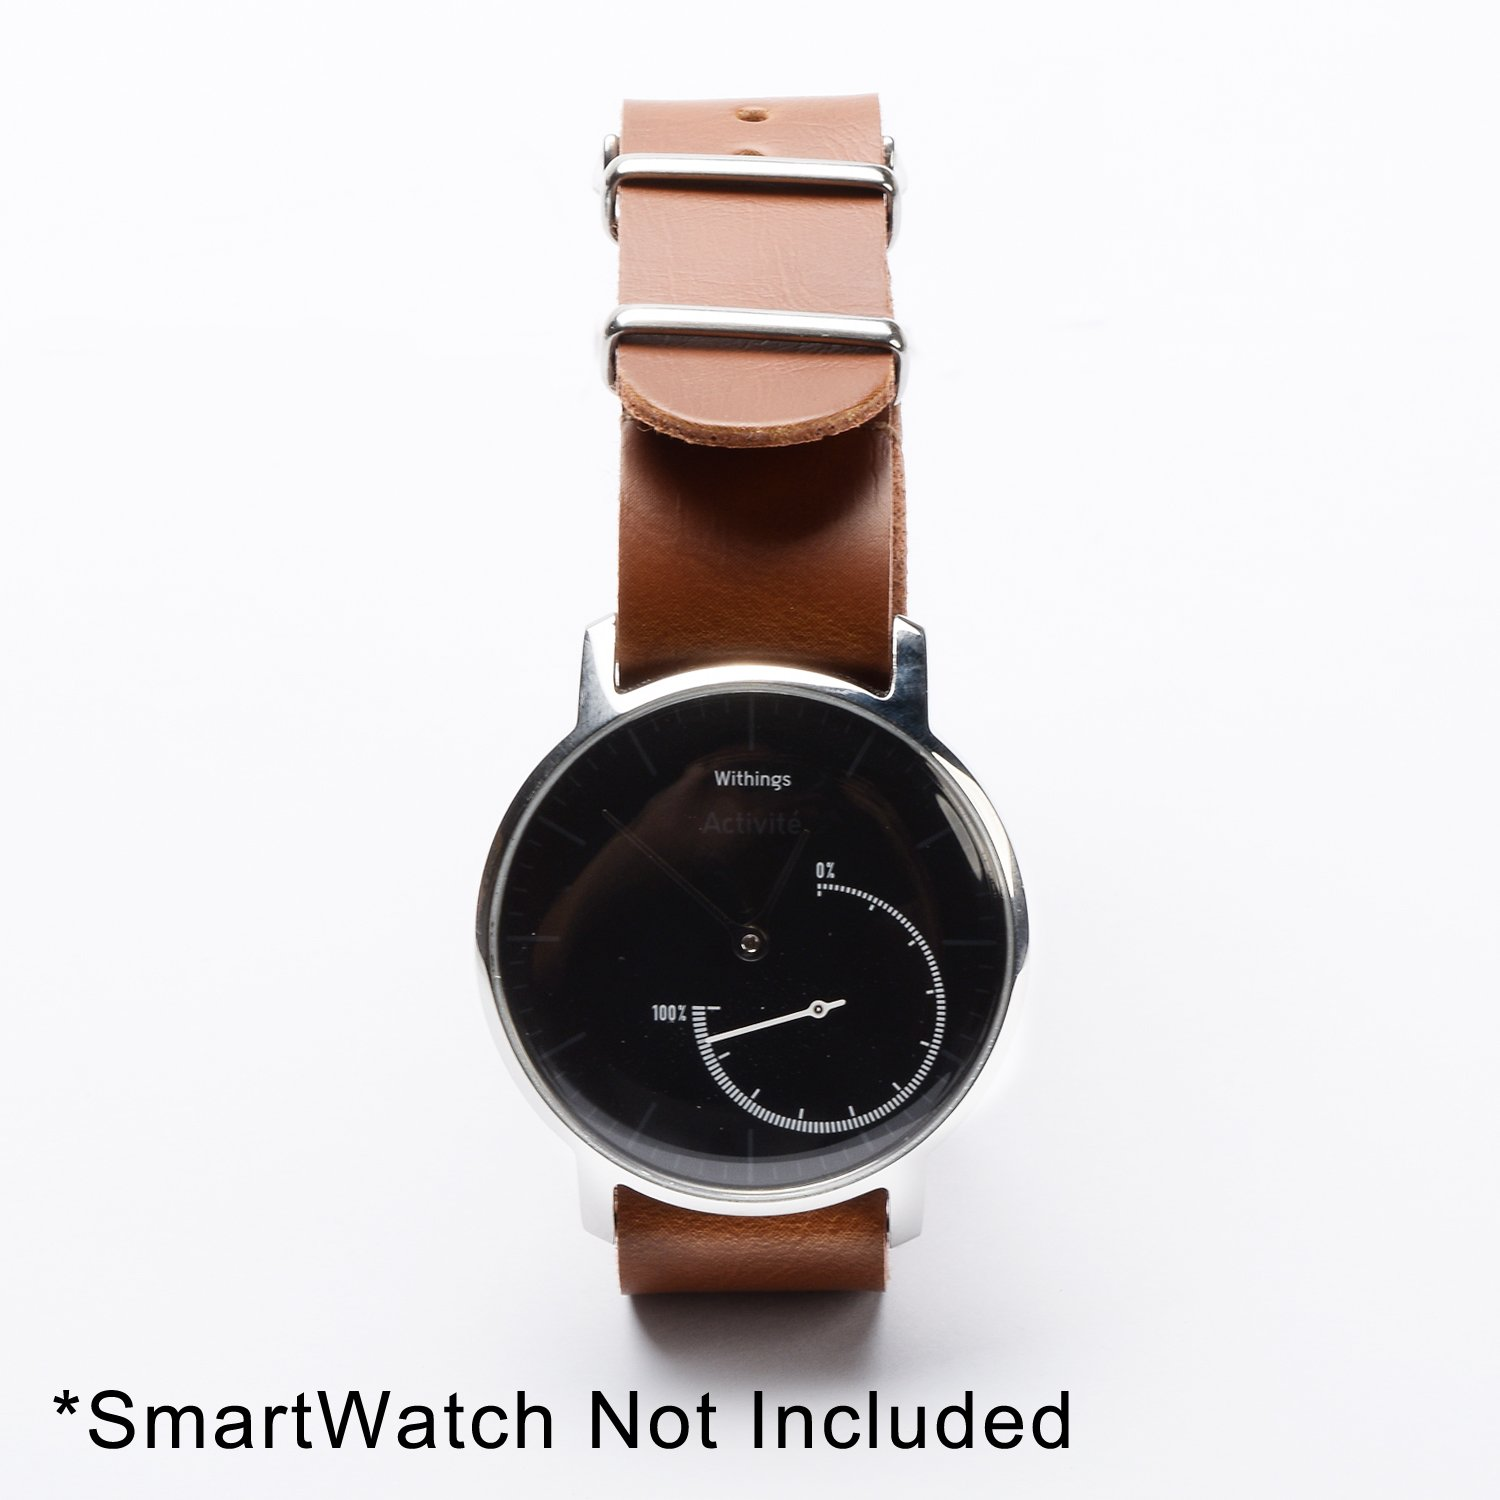 KR-NET 18mm NATO Brown Leather Watch Strap Band Military Style for Withings Activitie Pop Steel